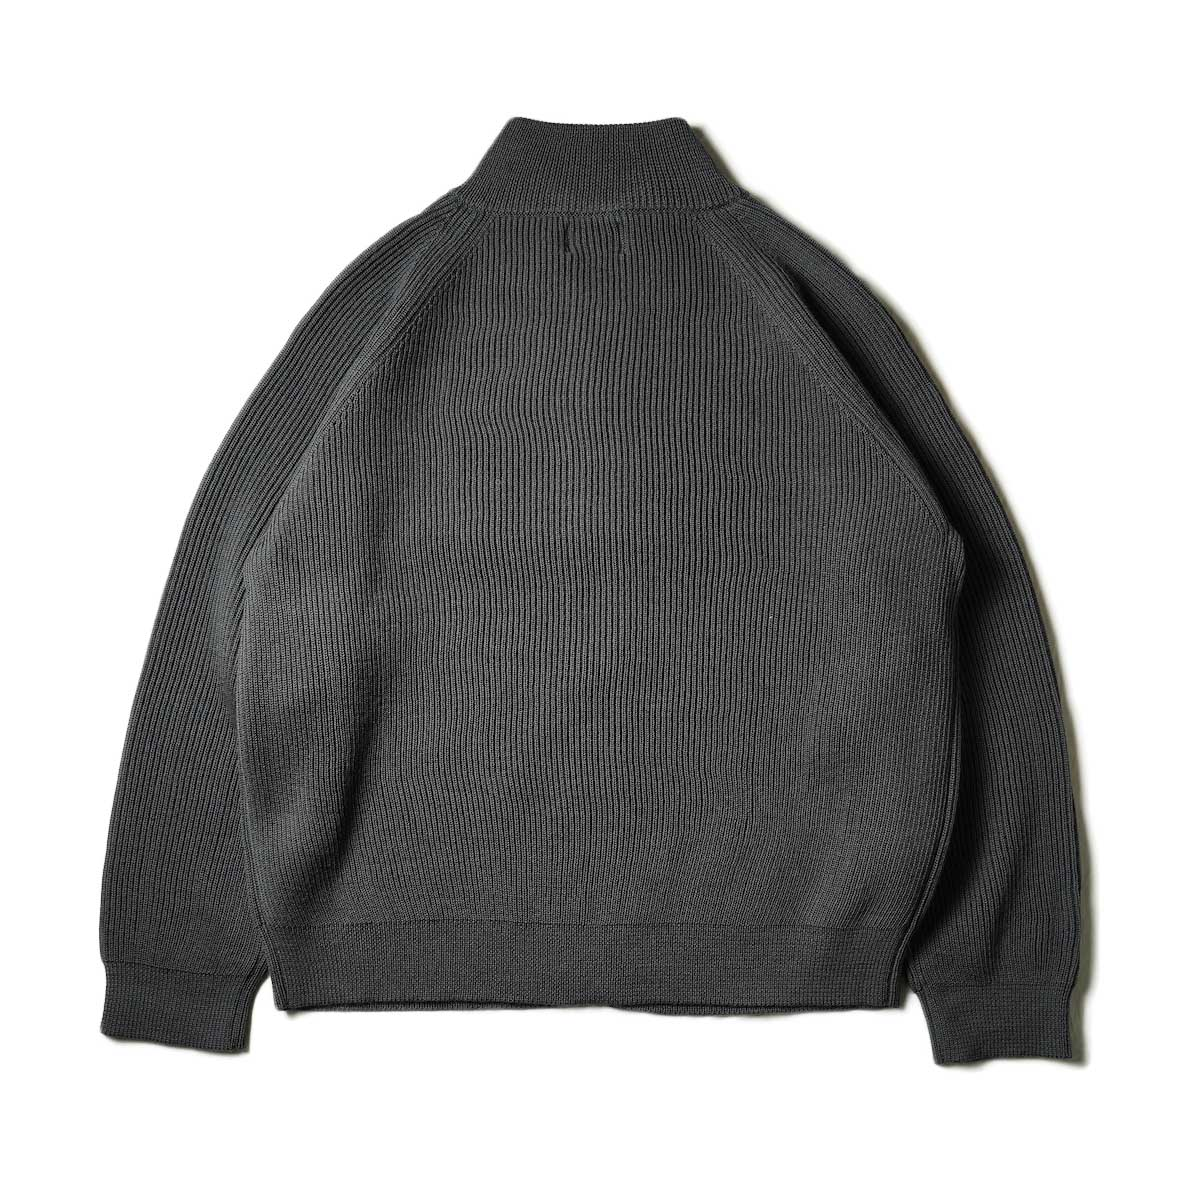 EVCON / DRIVERS SWEATER (Charcoal) 背面